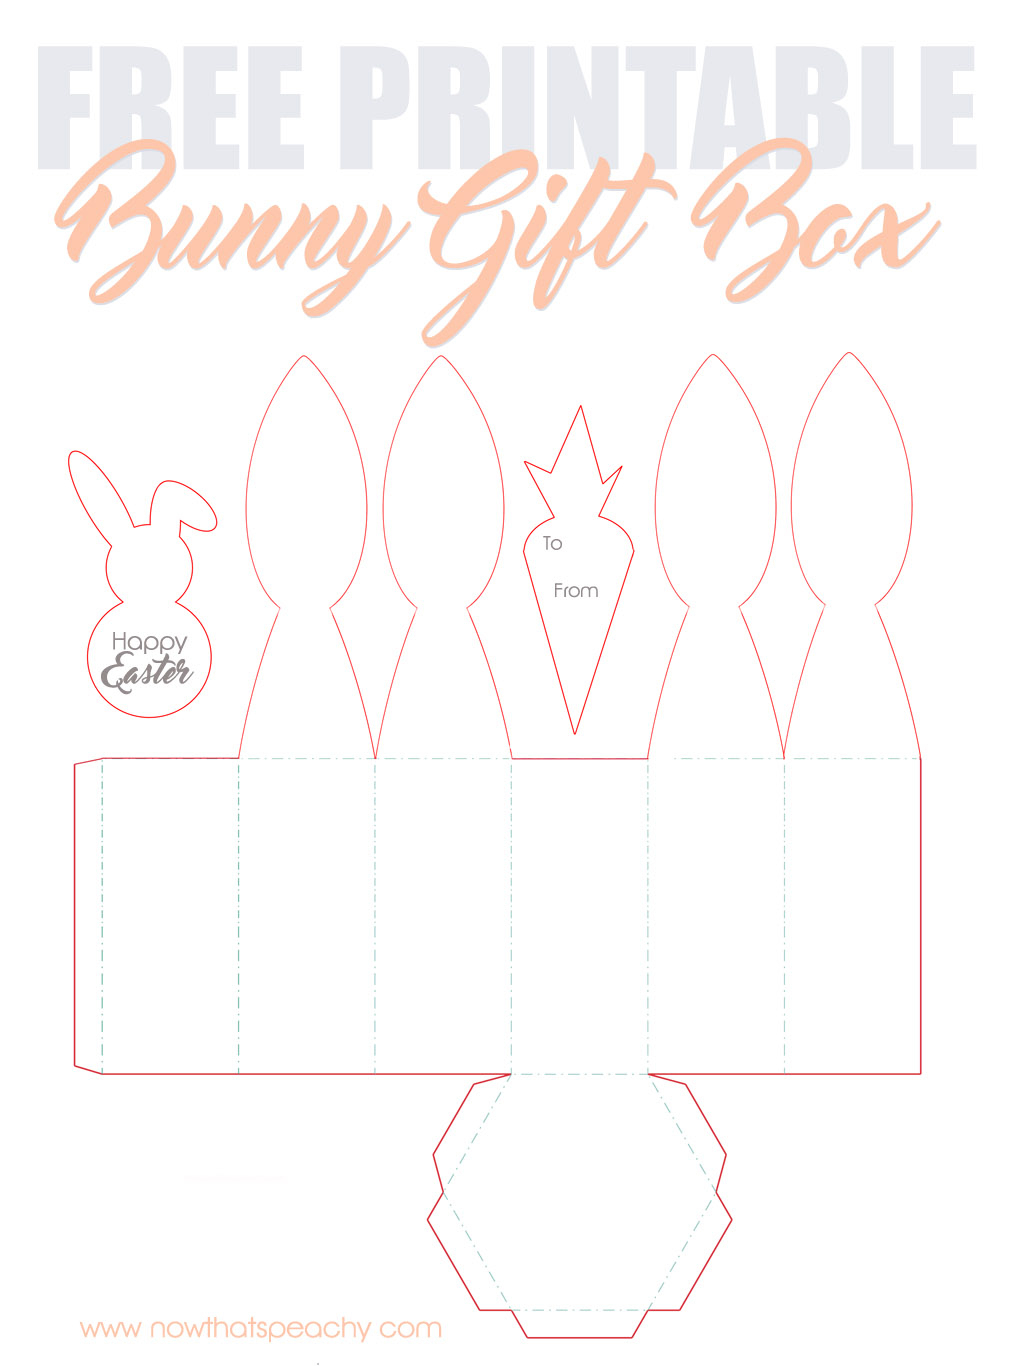 Free Bunny Ears Gift Box Printable For Easter | Now Thats Peachy - Free Printable Bunny Templates